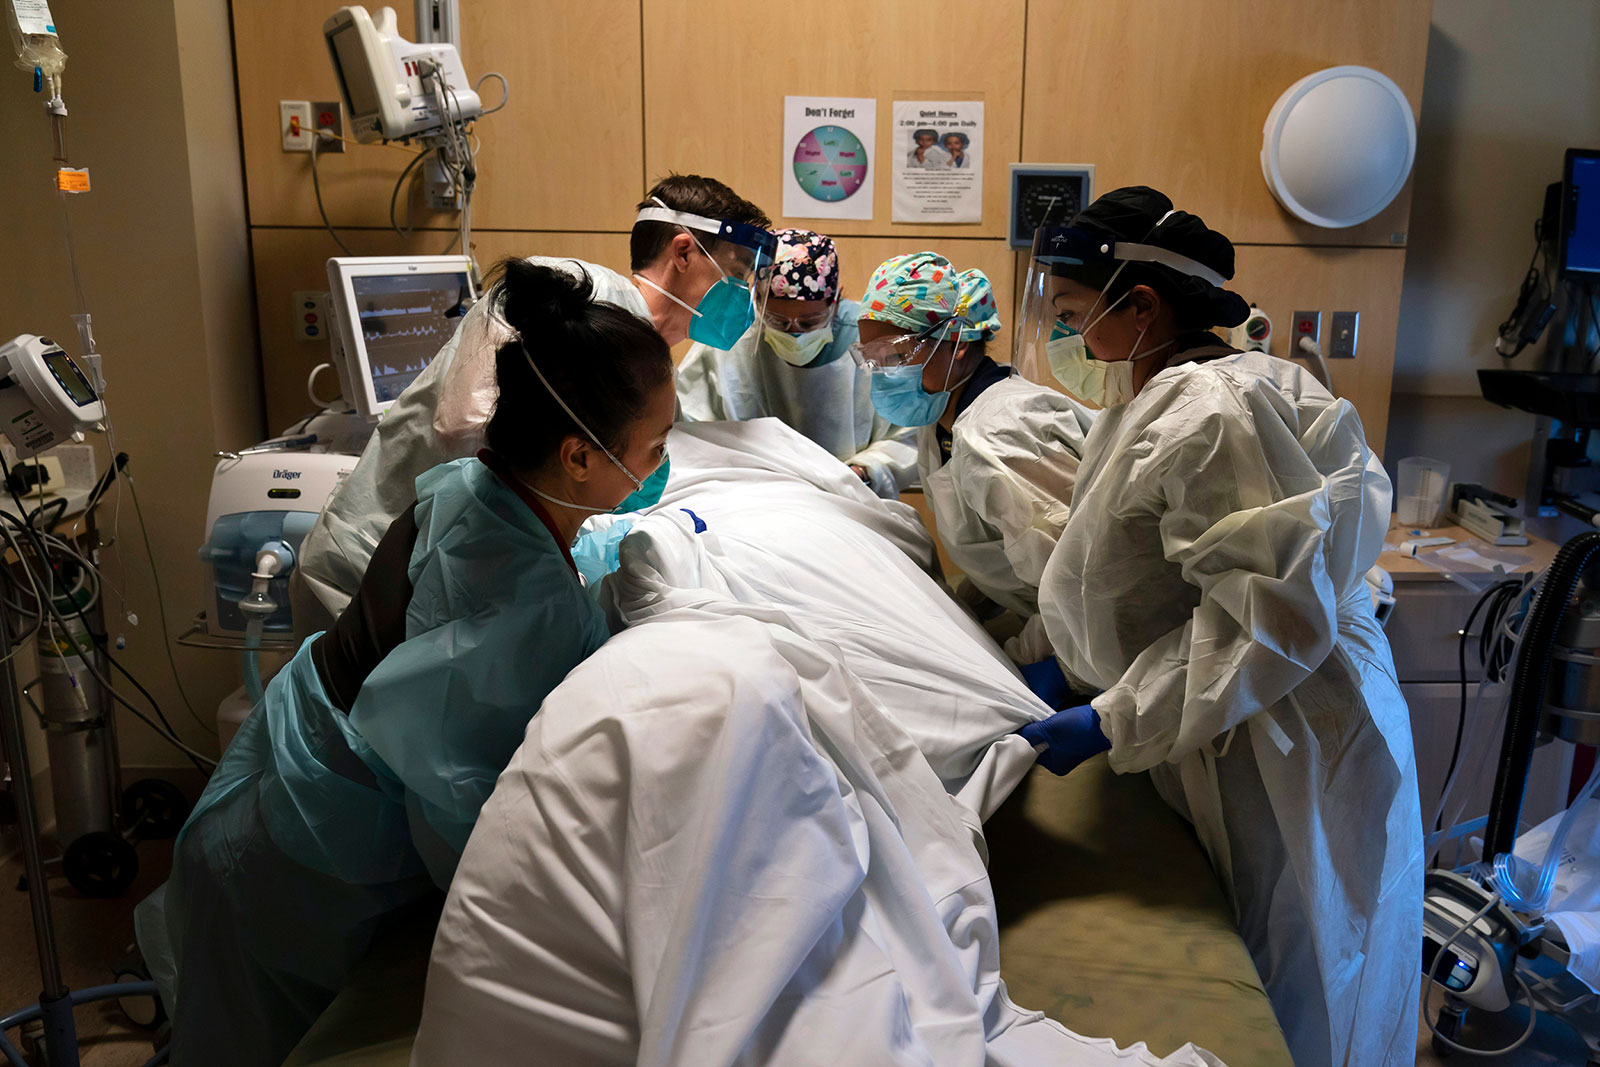 Medical personnel treat a Covid-19 patient at Providence Holy Cross Medical Center in Los Angeles on November 19.